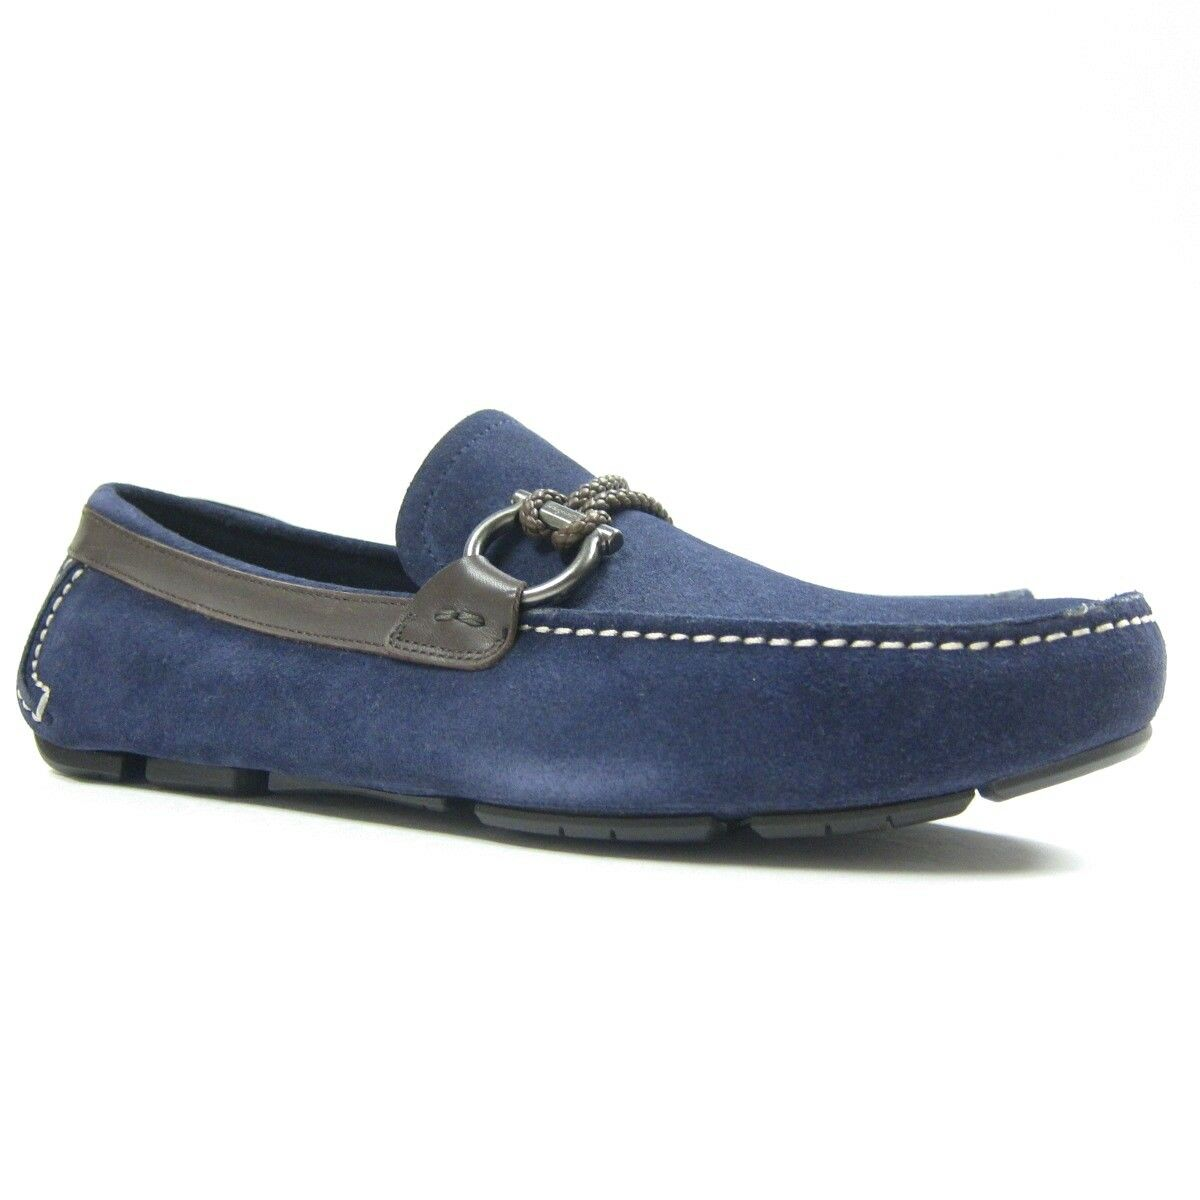 P-392210 New Salvatone Ferragamo Front Driving Loafers Shoes Navy Suede US 7